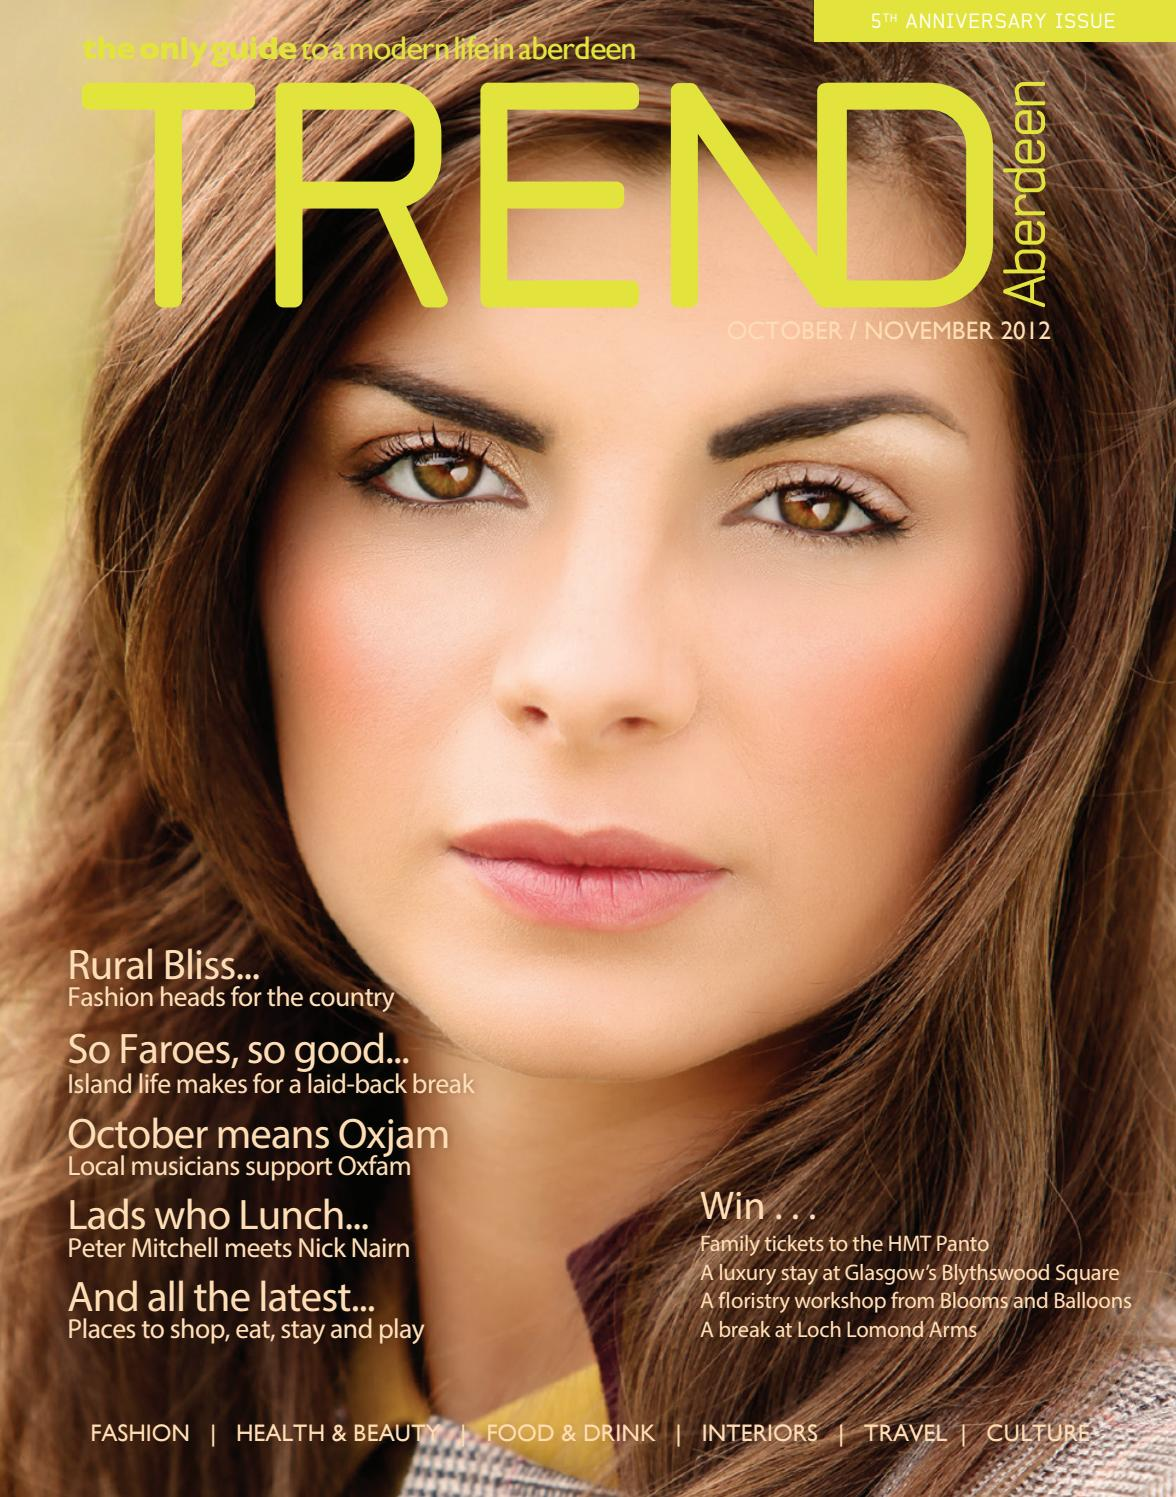 trend oct nov issue by trend productions ltd issuu